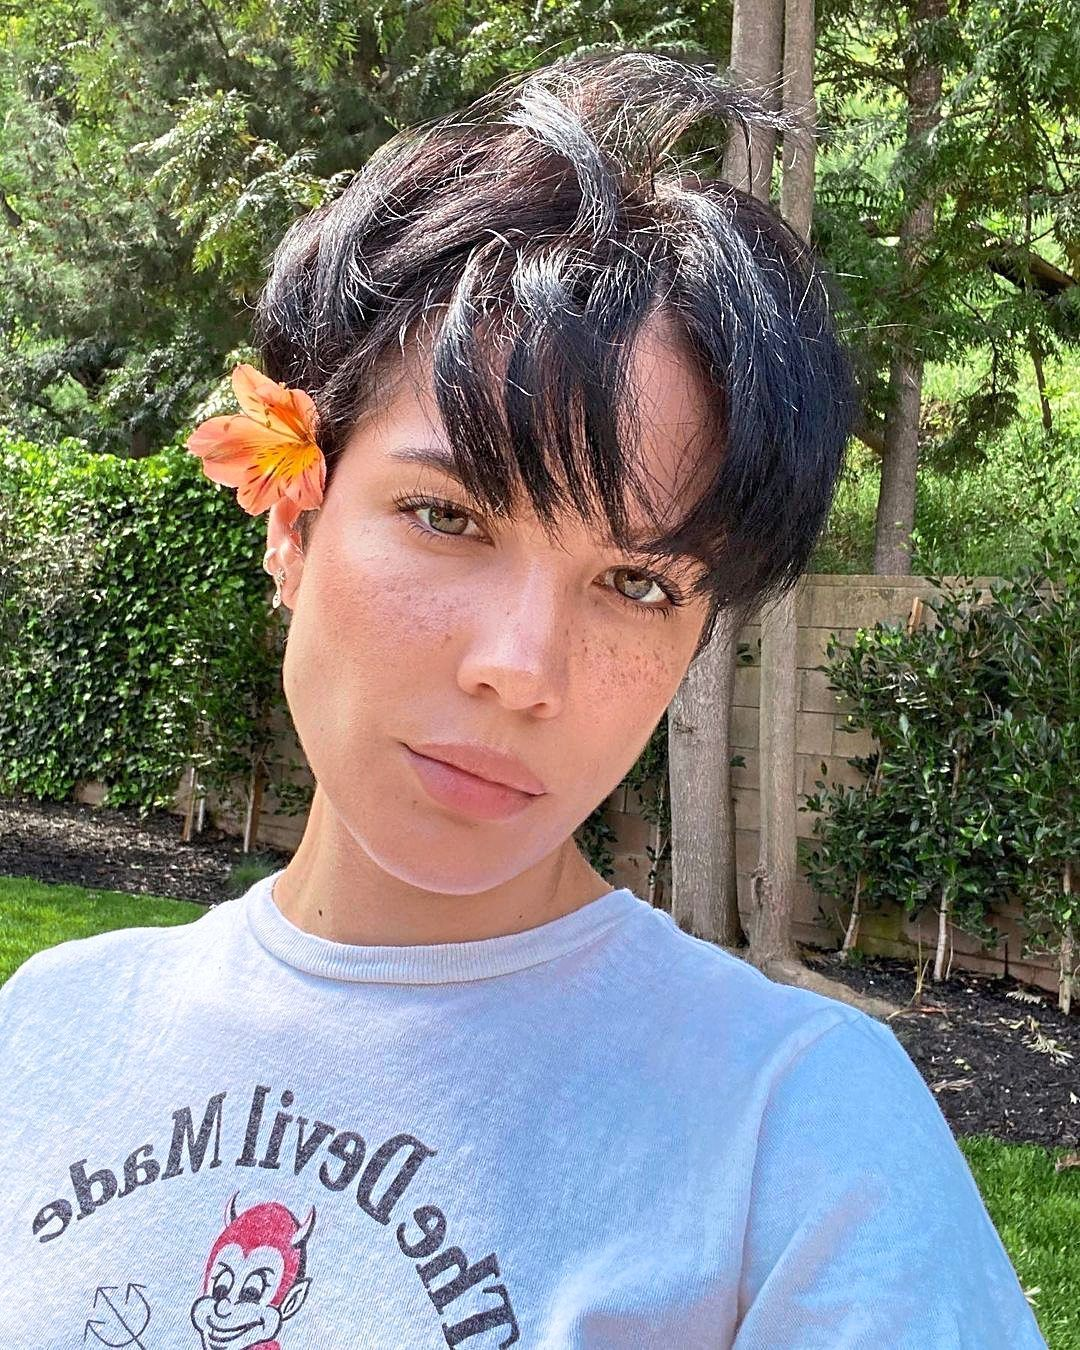 Here's Halsey with hair sporting a pixie cut earlier during quarantine.